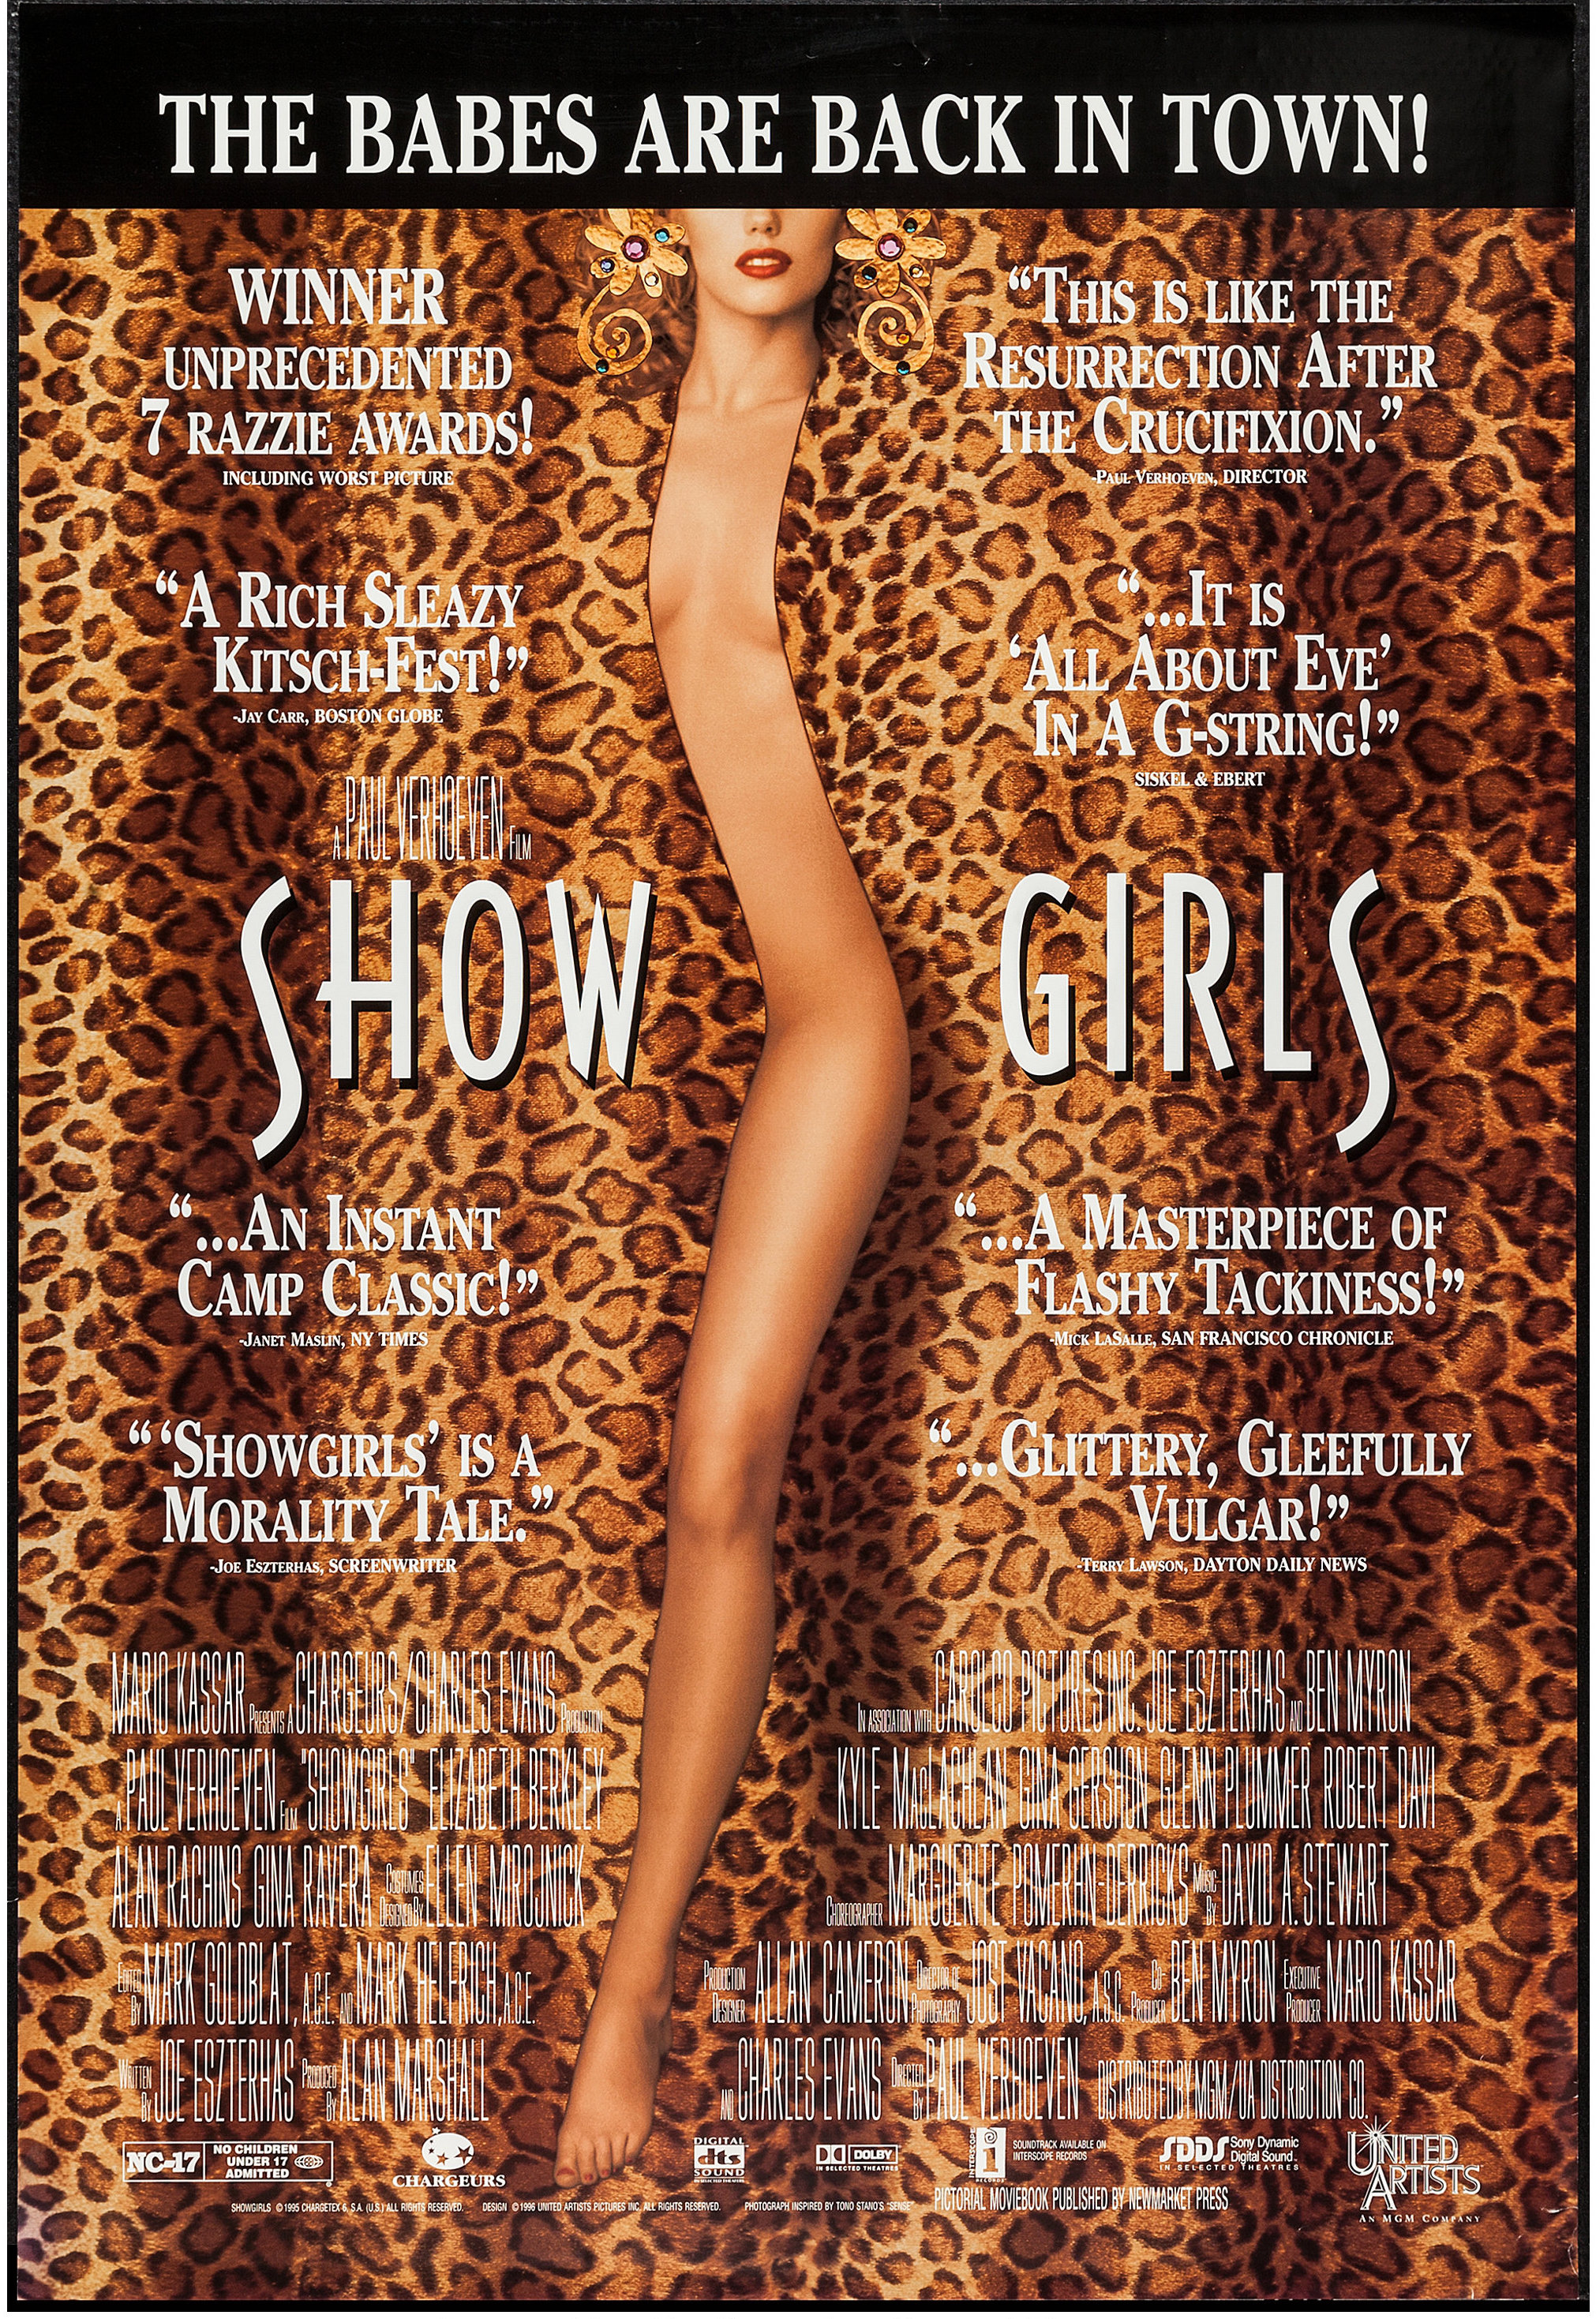 lf 1 20 Show-Stopping Facts About 1995's Showgirls